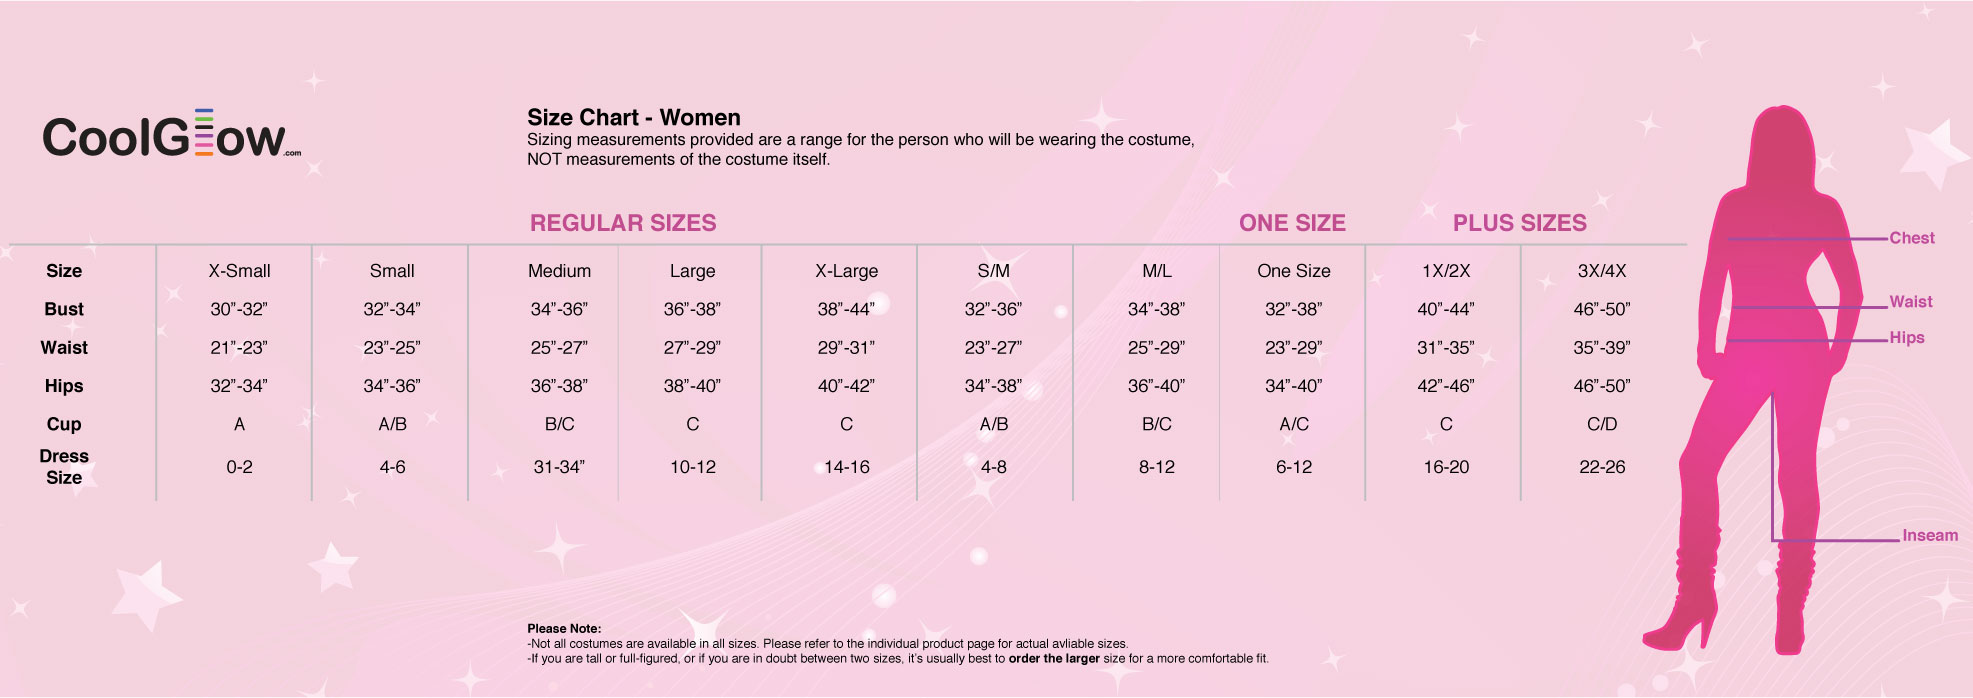 Kids Fashion | Shoes Size Chart Kids And Women | aecfashion.com